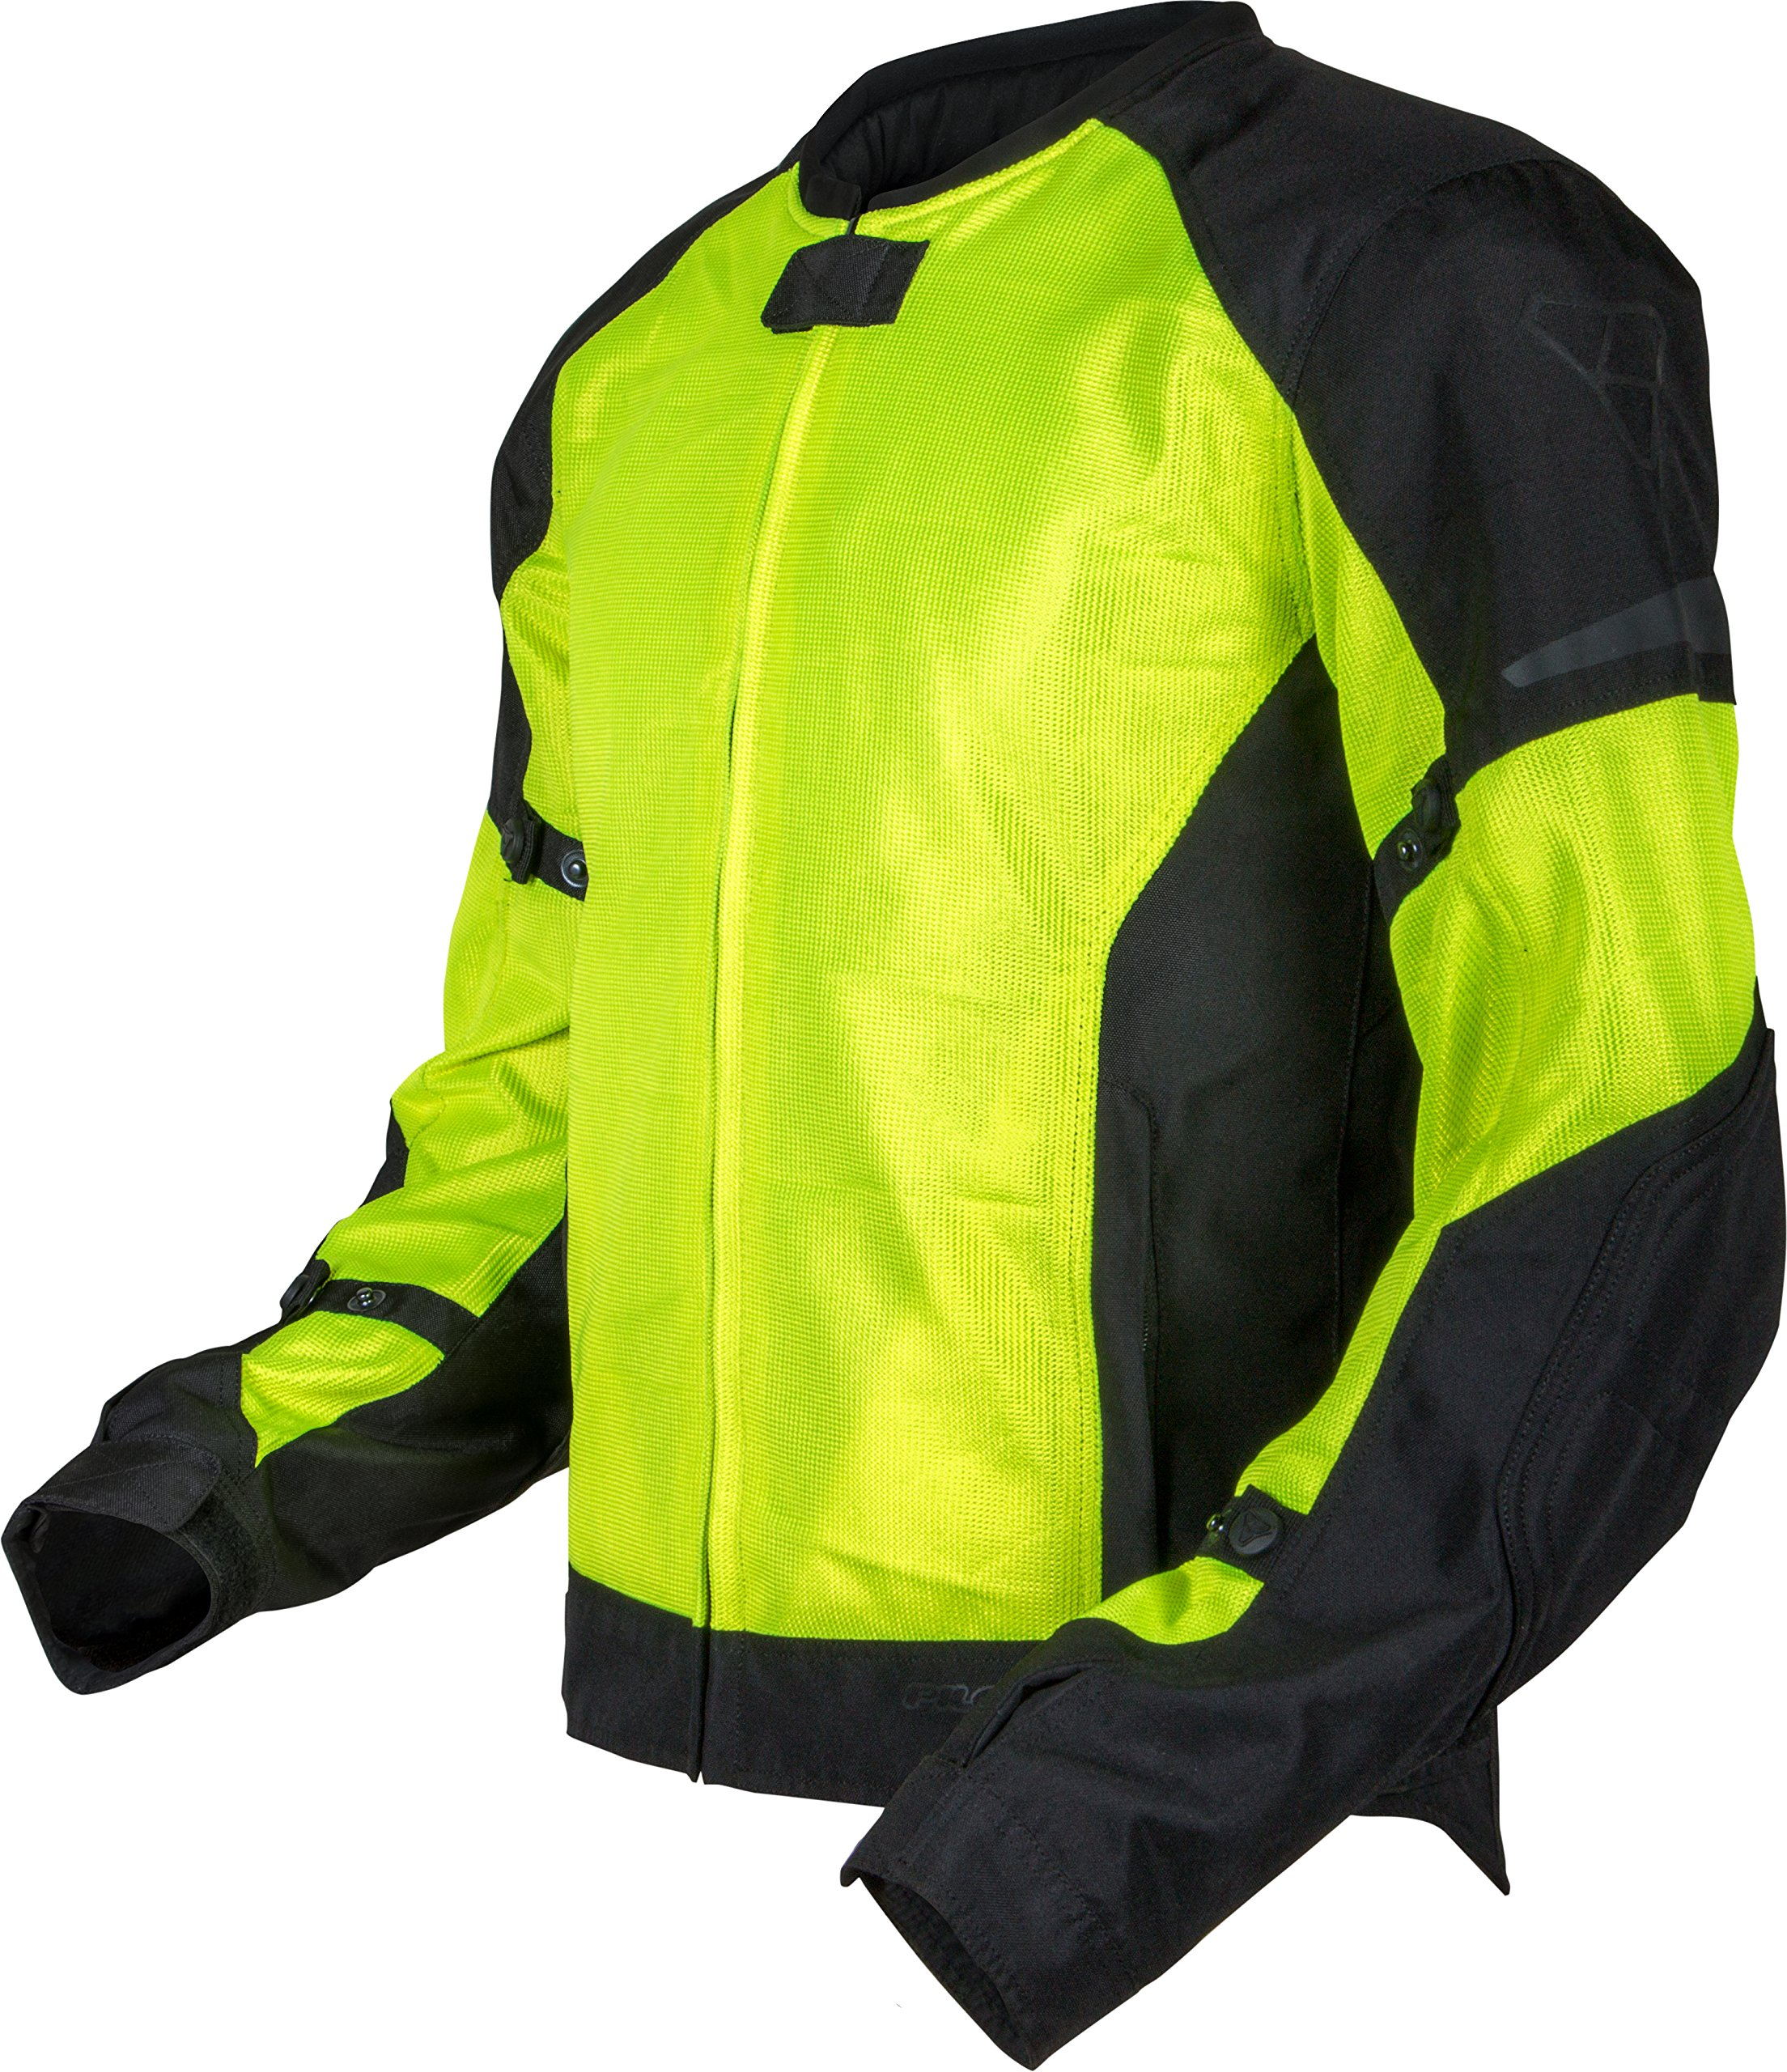 Pilot Motosport Men's Slate Air Mesh Motorcycle Jacket, HI-VIS, S Small